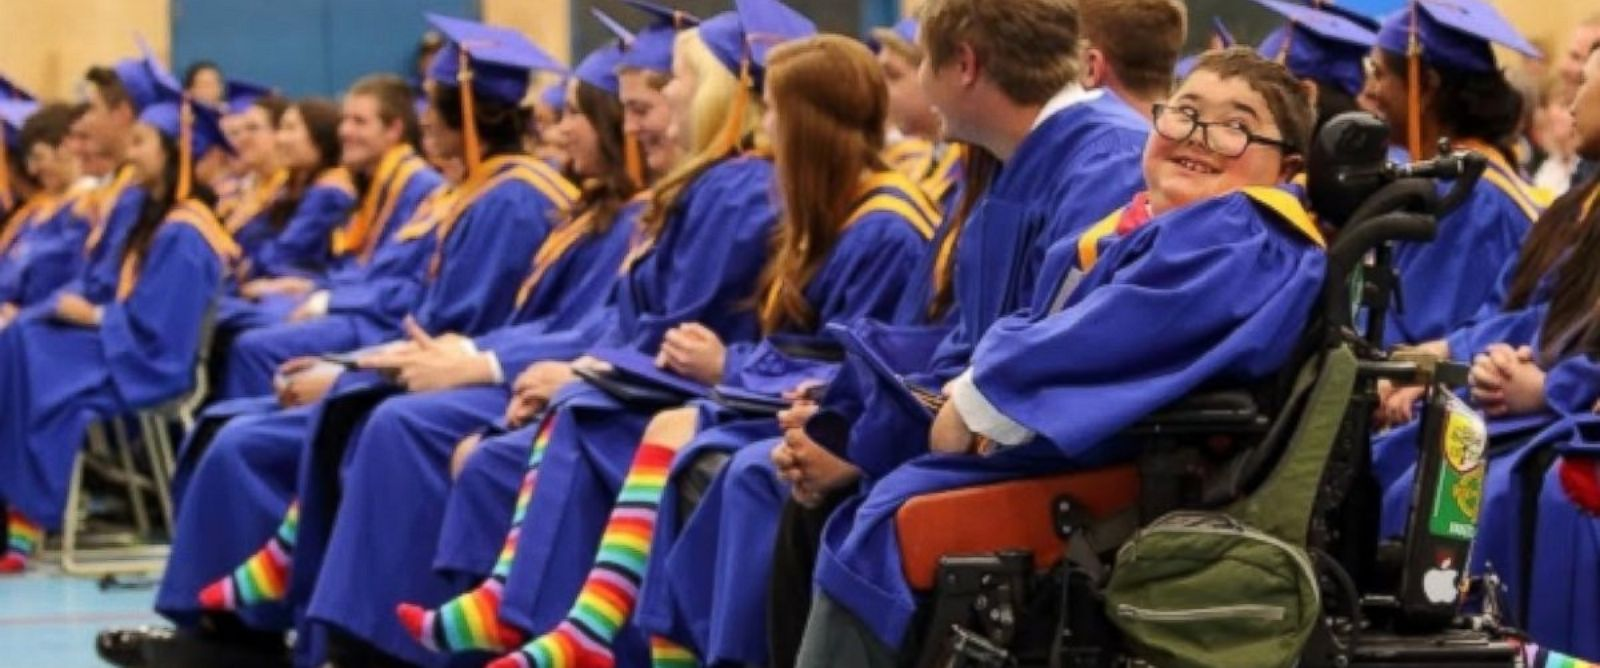 PHOTO: More than half of the graduating students at Vanier Catholic Secondary School in Whitehorse, Canada wore rainbow socks at their cap and gown ceremony this weekend to support their schools gay-straight alliance.